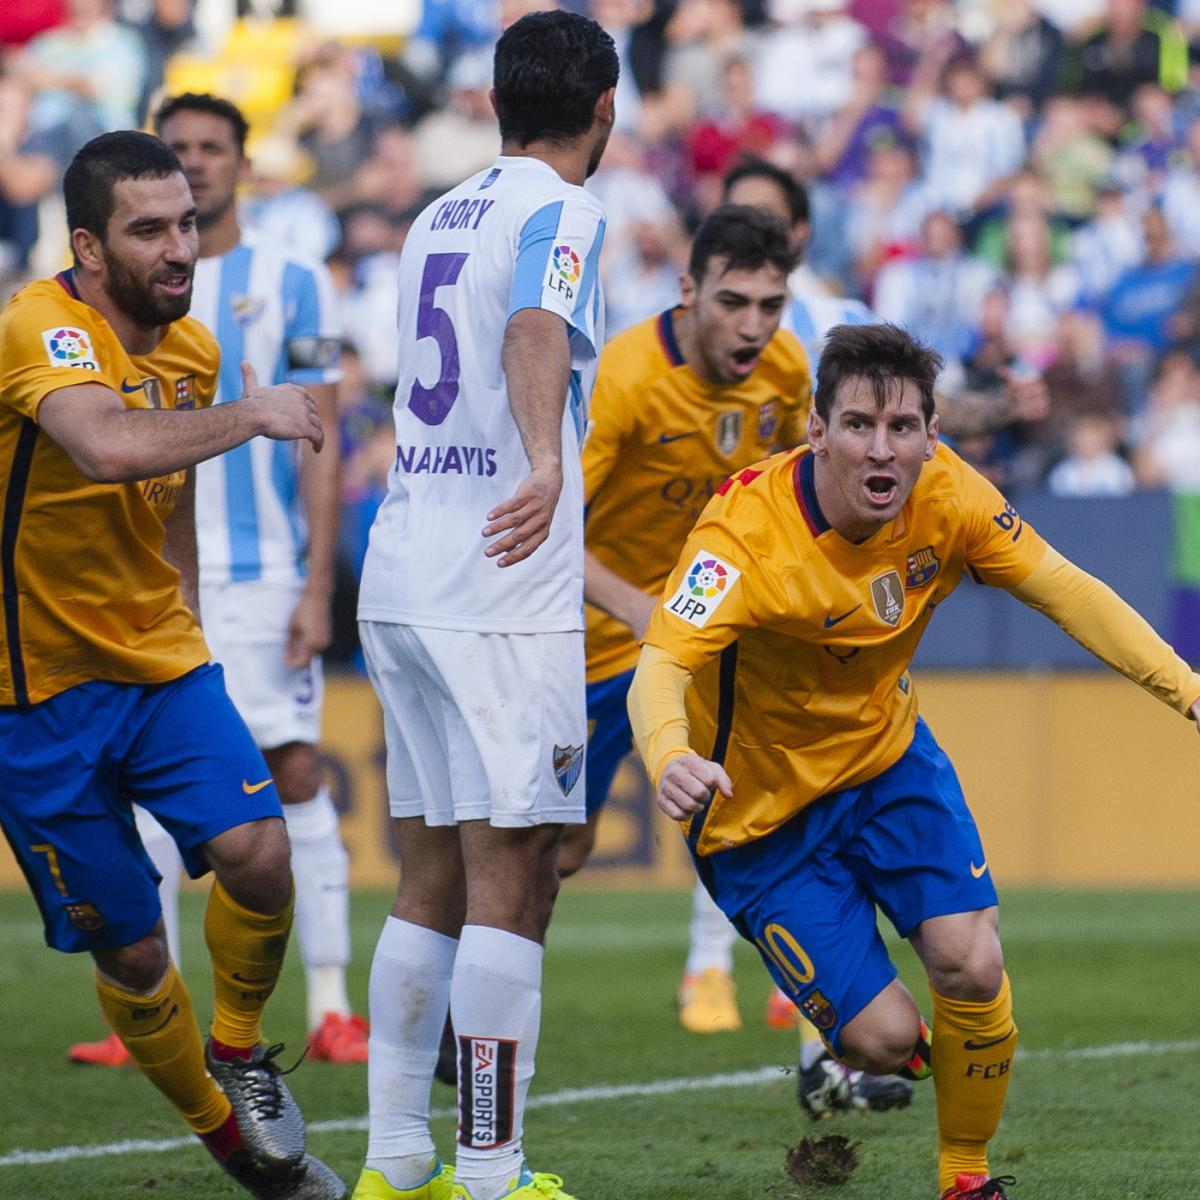 La liga results 2016 week 21 final scores and updated - La liga latest results and table ...